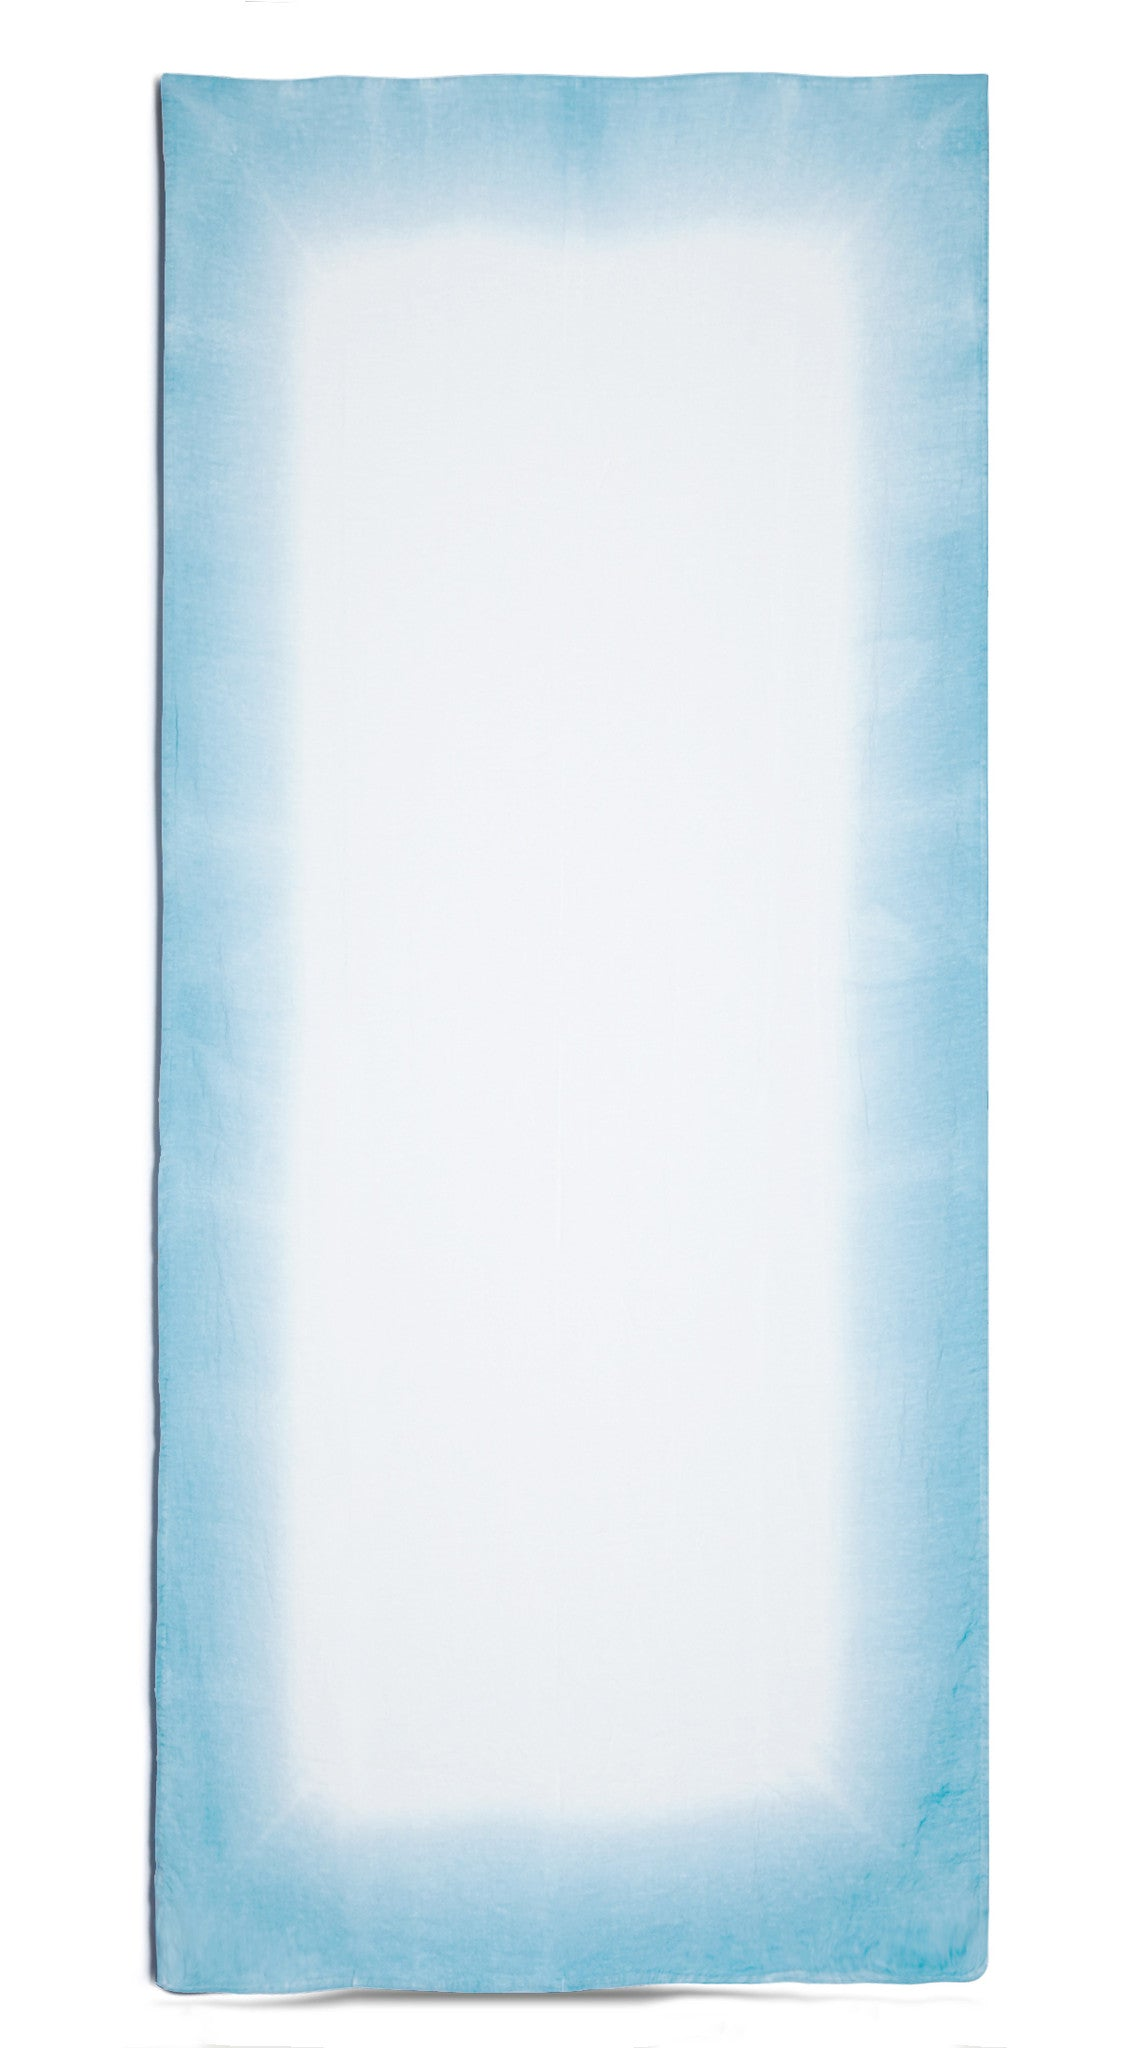 Fade Linen Tablecloth in Baby Blue